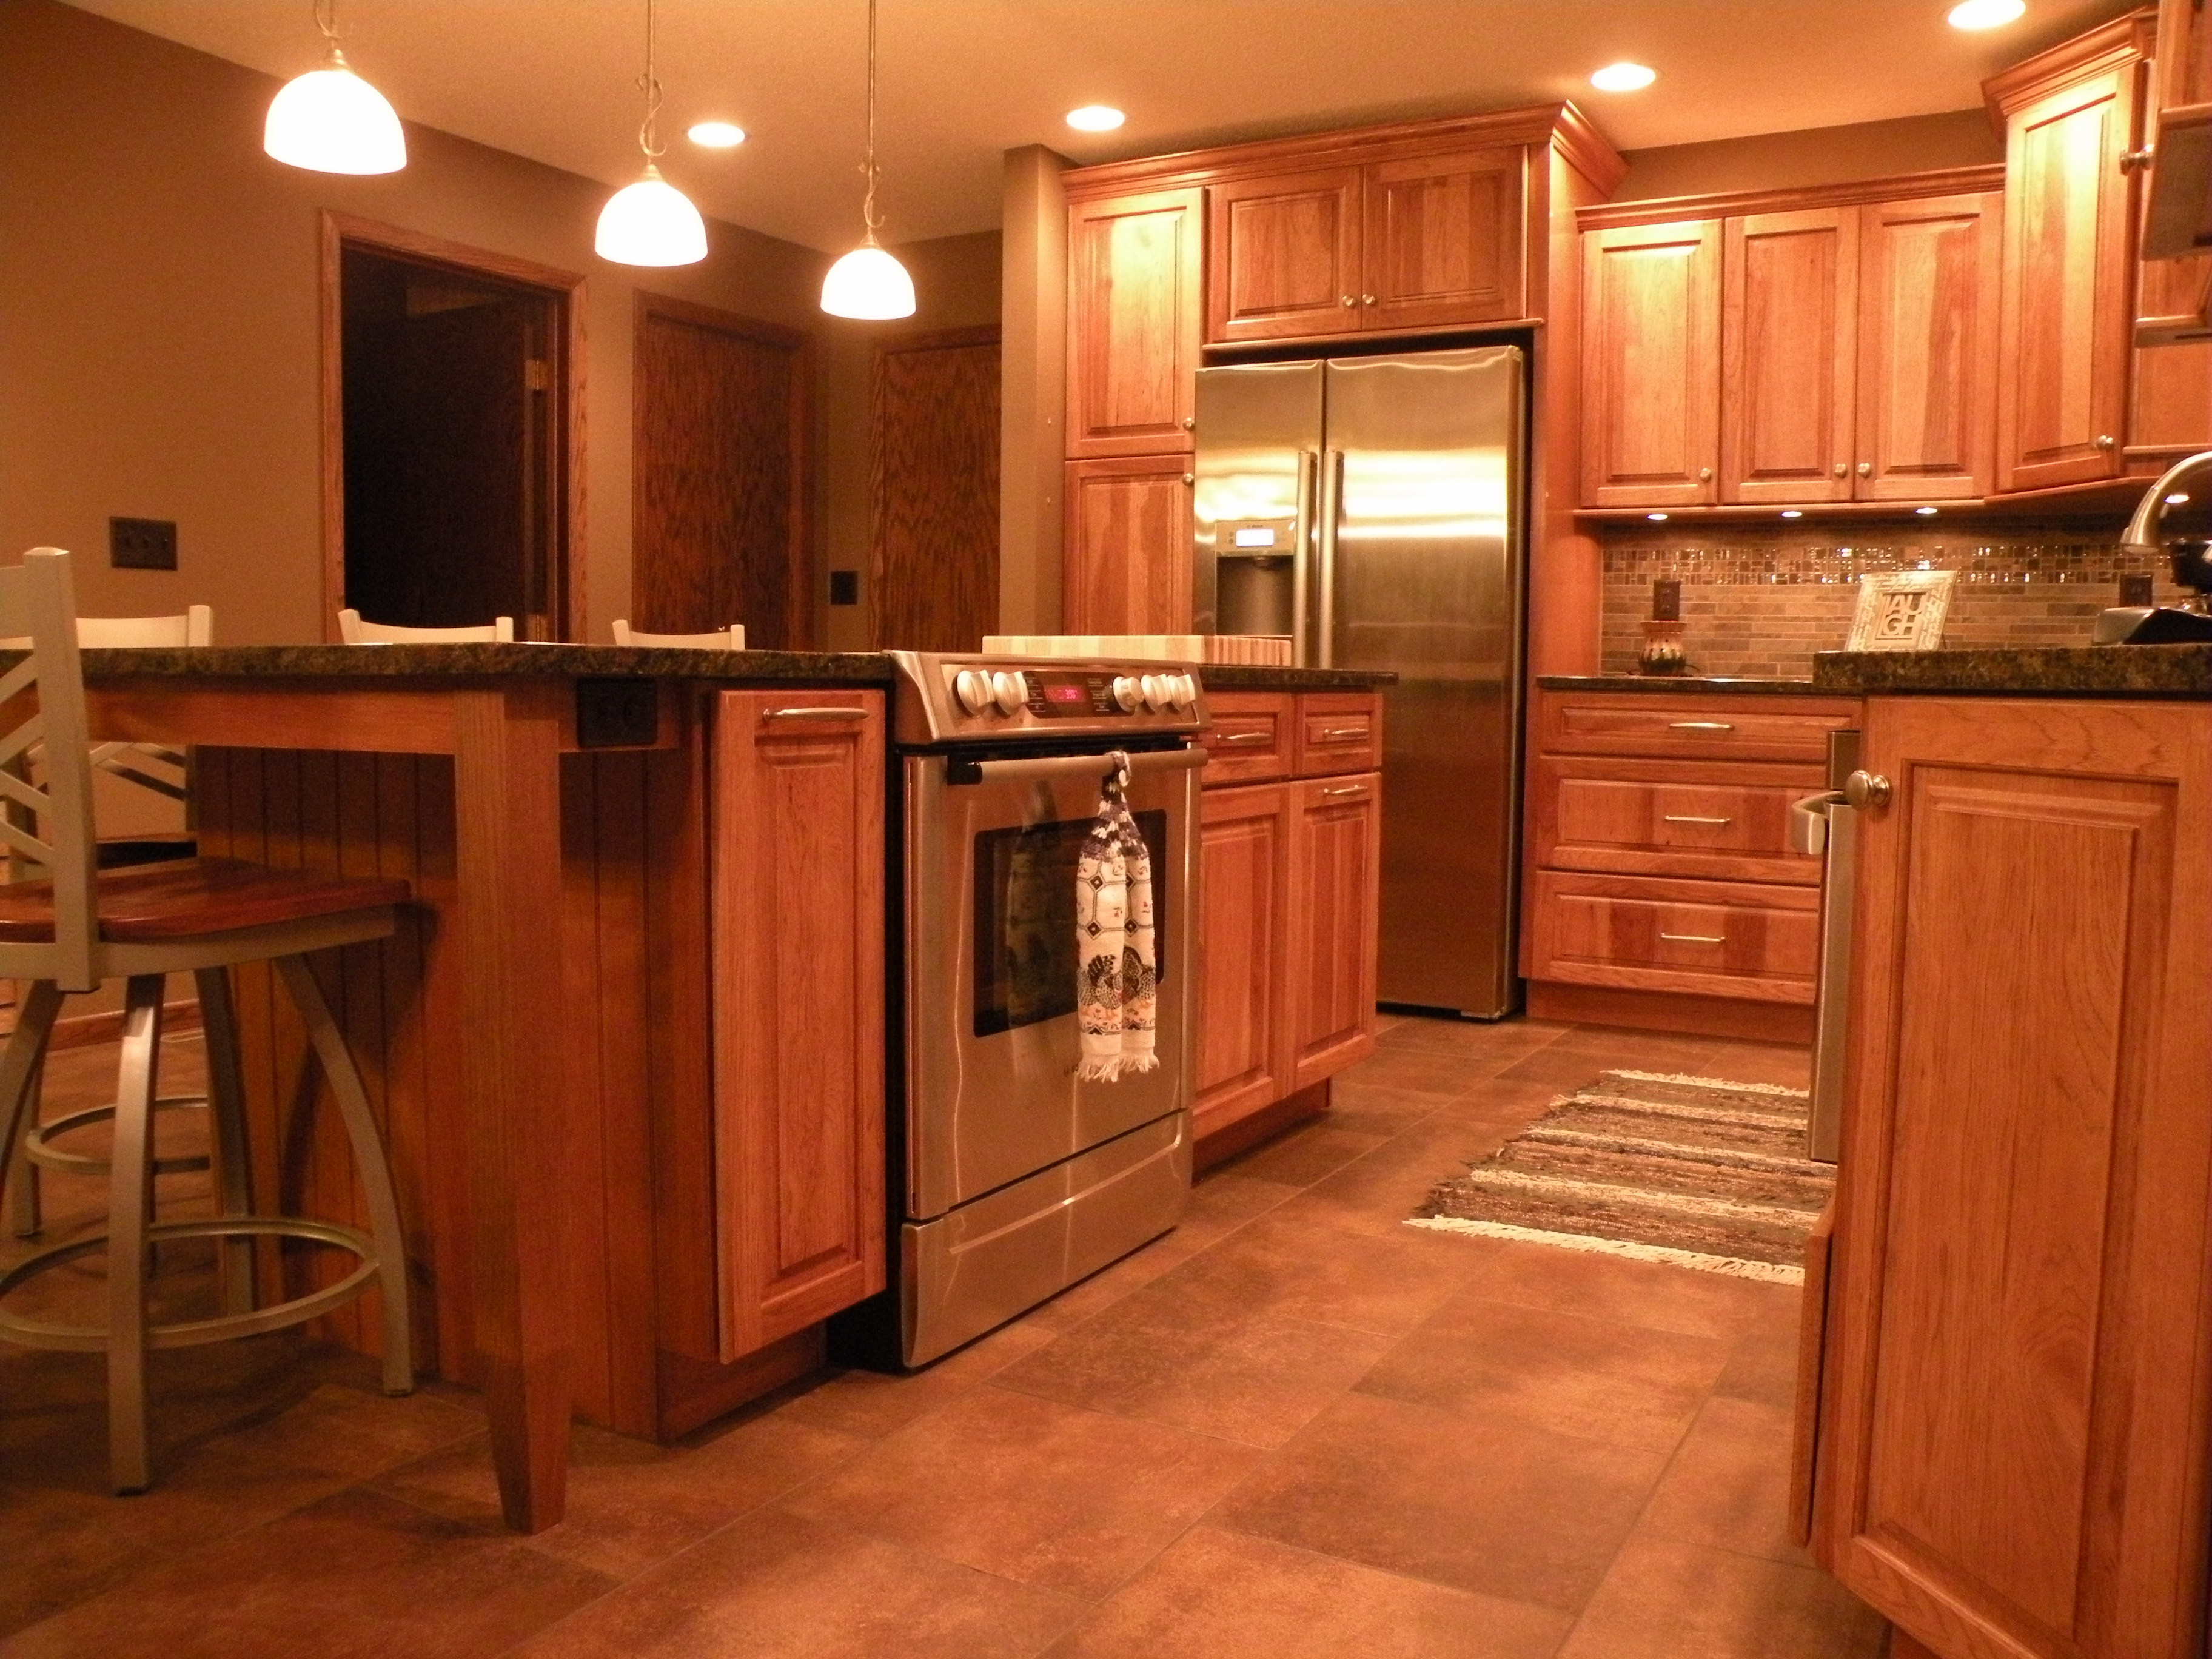 Kraftmaid Hickory Sunset Marquette Cabinetry Kitchens Amp Baths By Greta